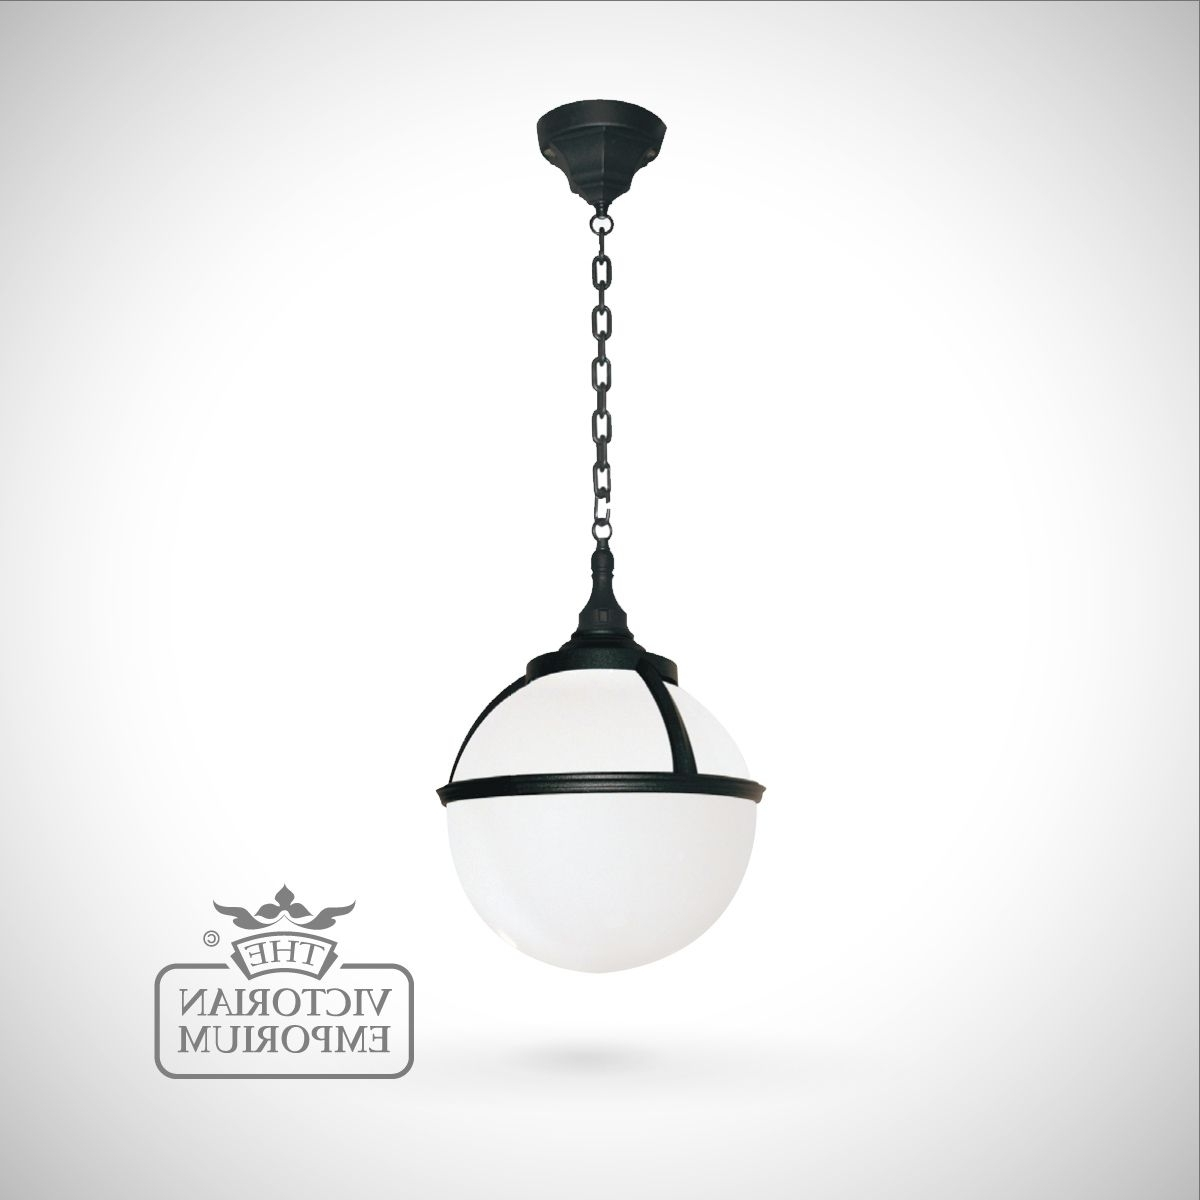 Exterior Ceiling Lights (View 8 of 20)